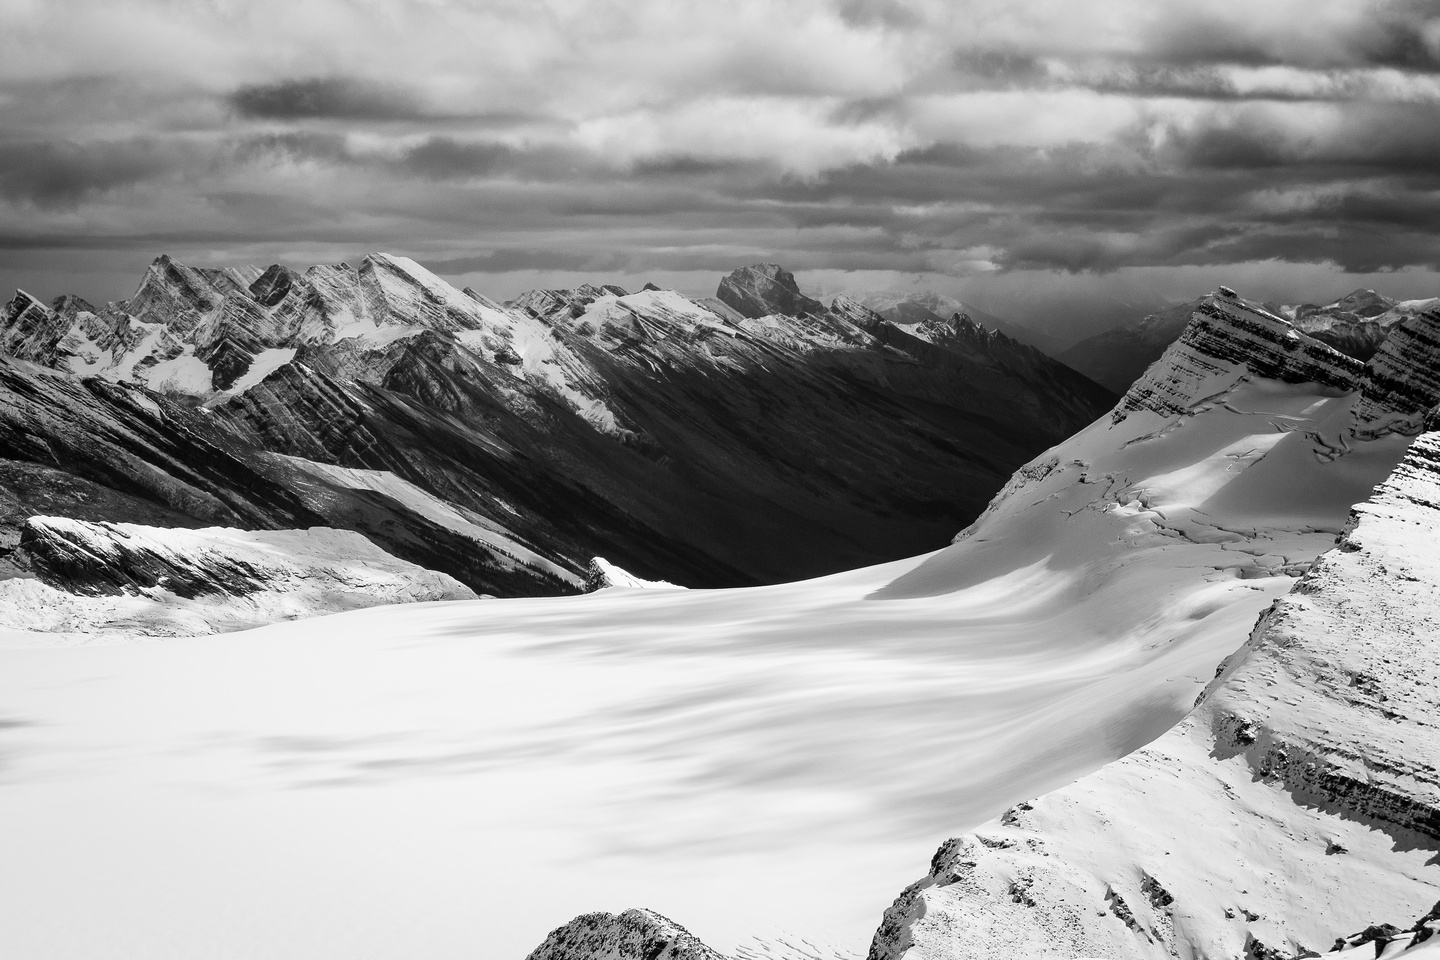 Looking over the Reef Icefield to Mount Fitzwilliam in the distance.